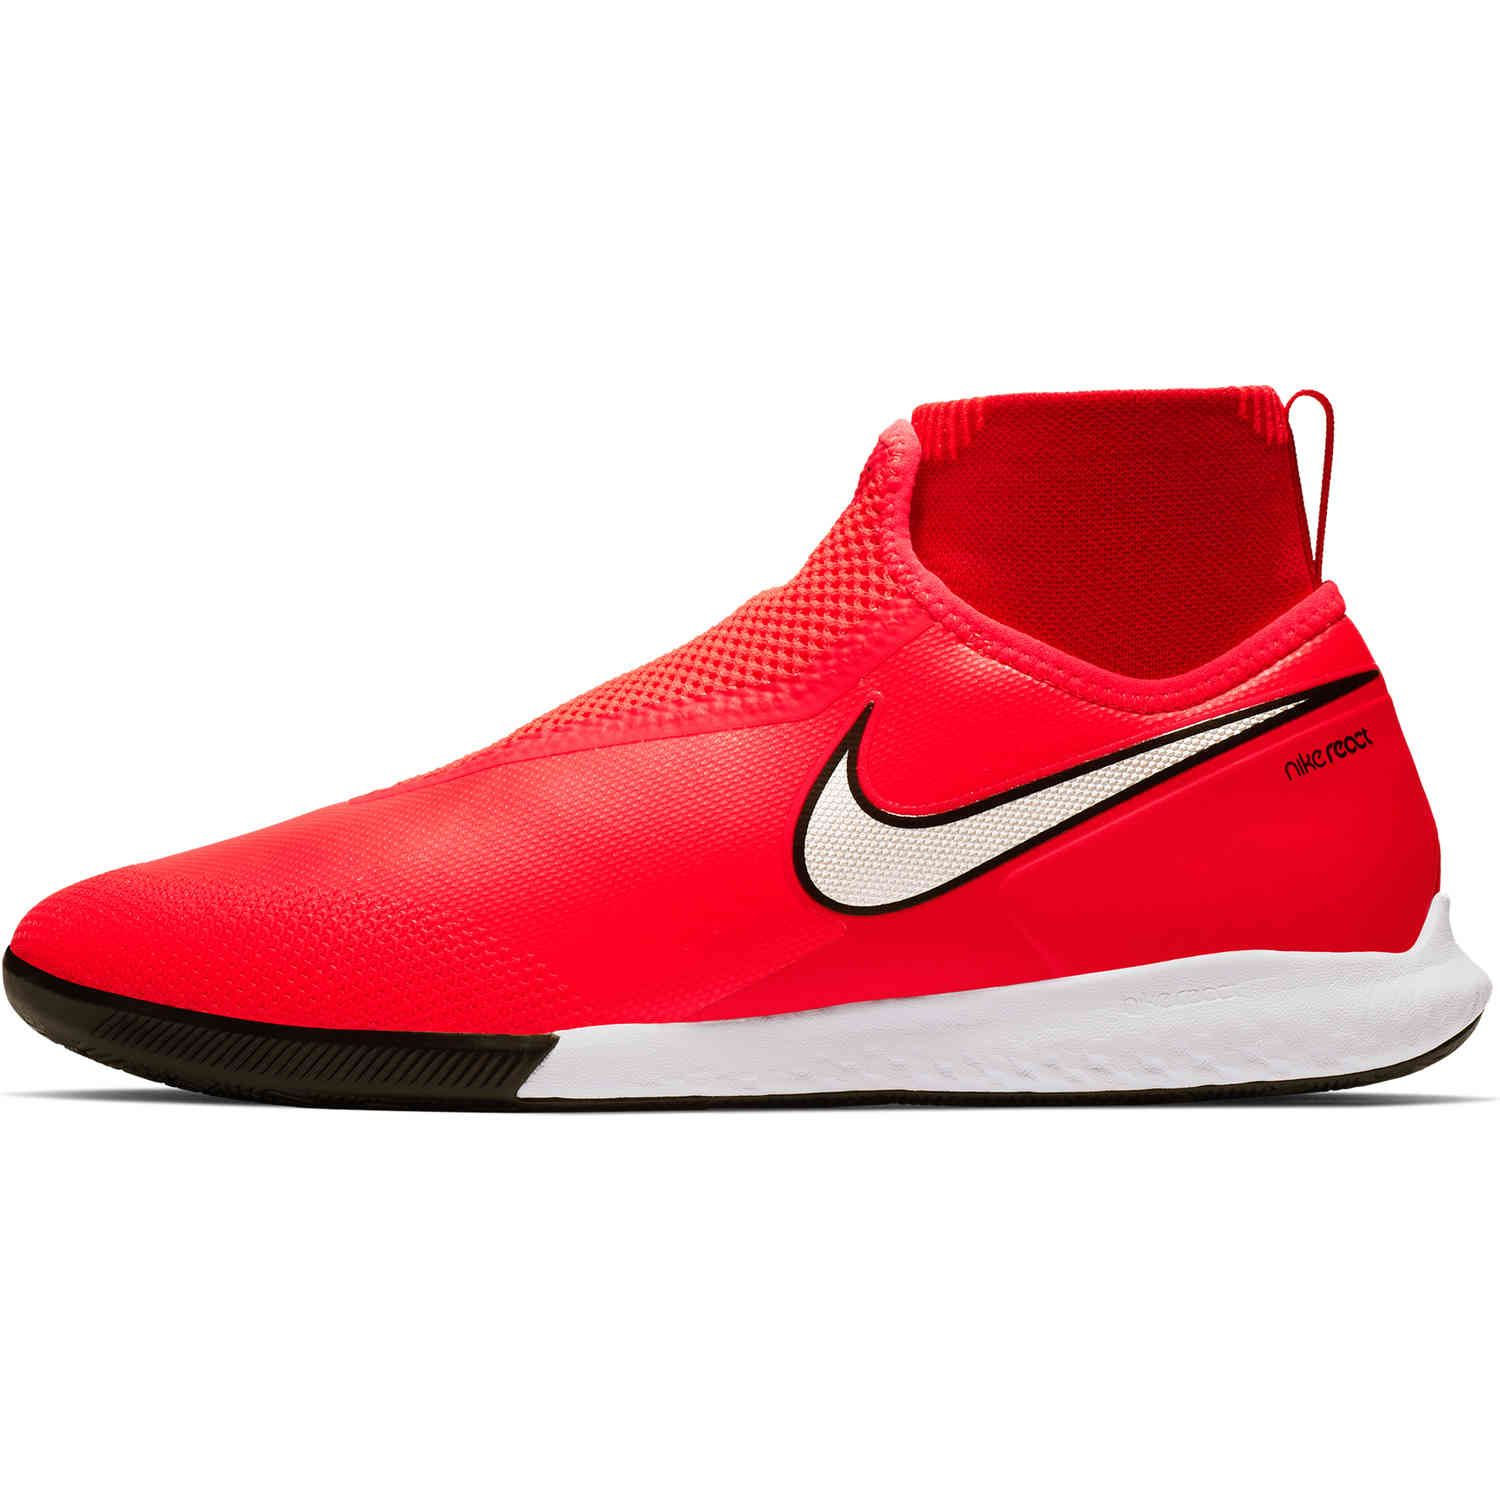 d674b1fa4ca The Game Over pack Nike PhantomVSN Pro indoor soccer shoes are hotter than  lava from a volcano! Buy these brilliant shoes from SoccerPro right now!